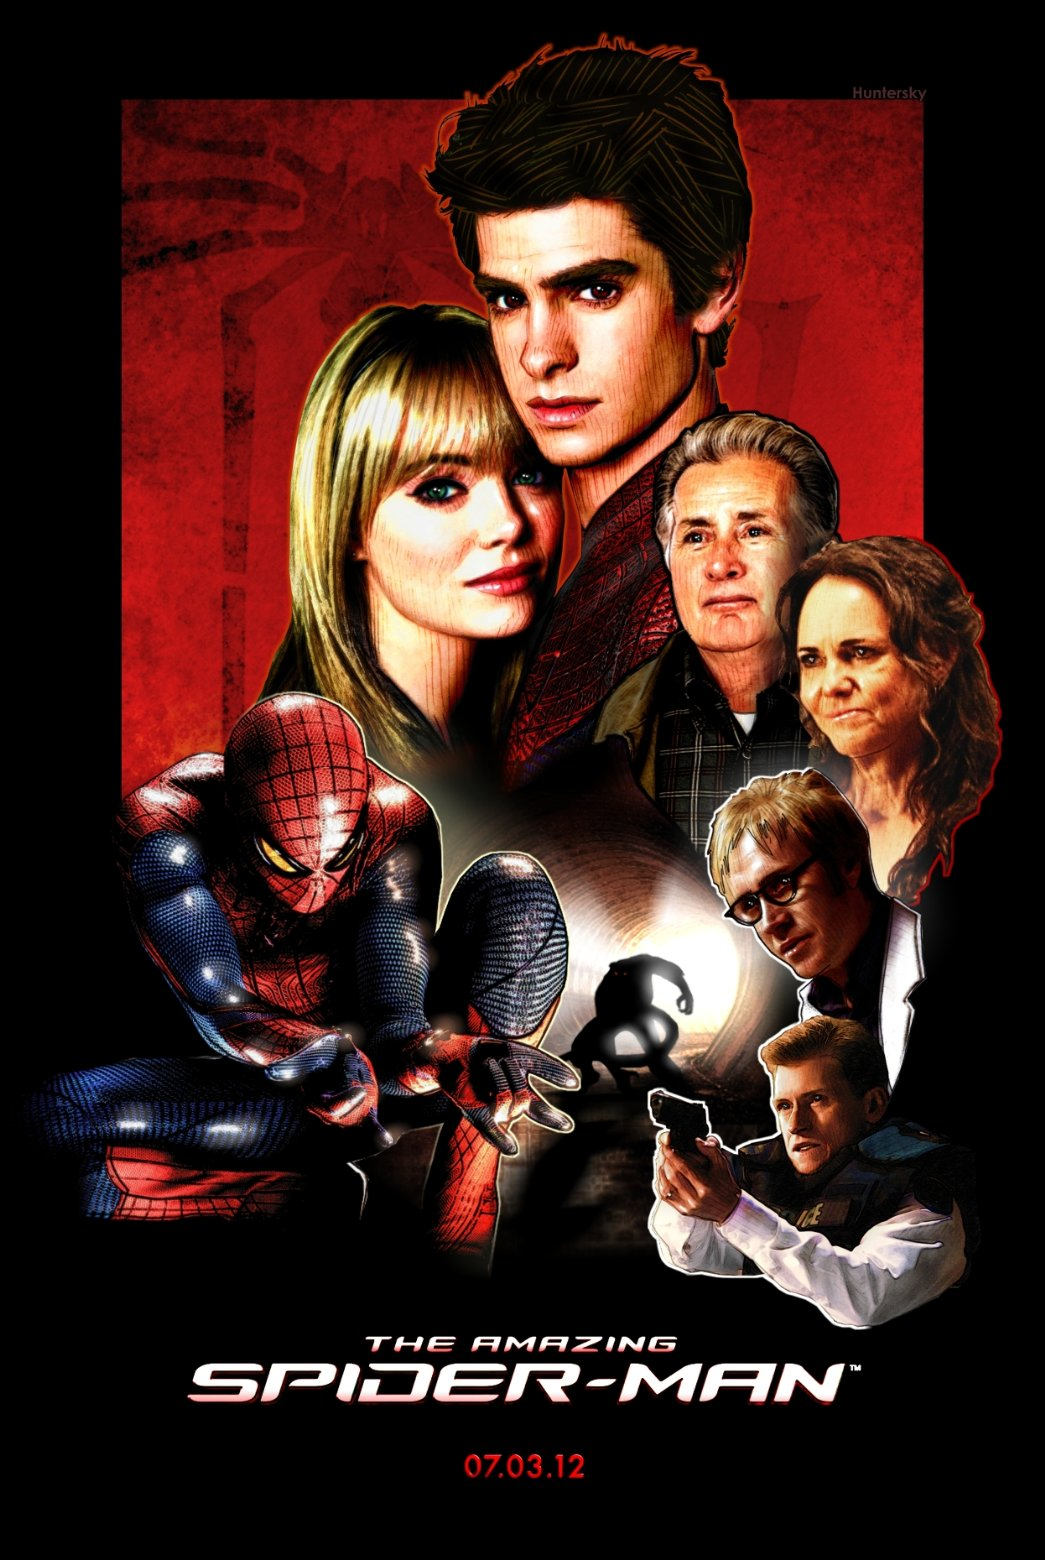 The Amazing Spider Man Huntersky Movie Poster